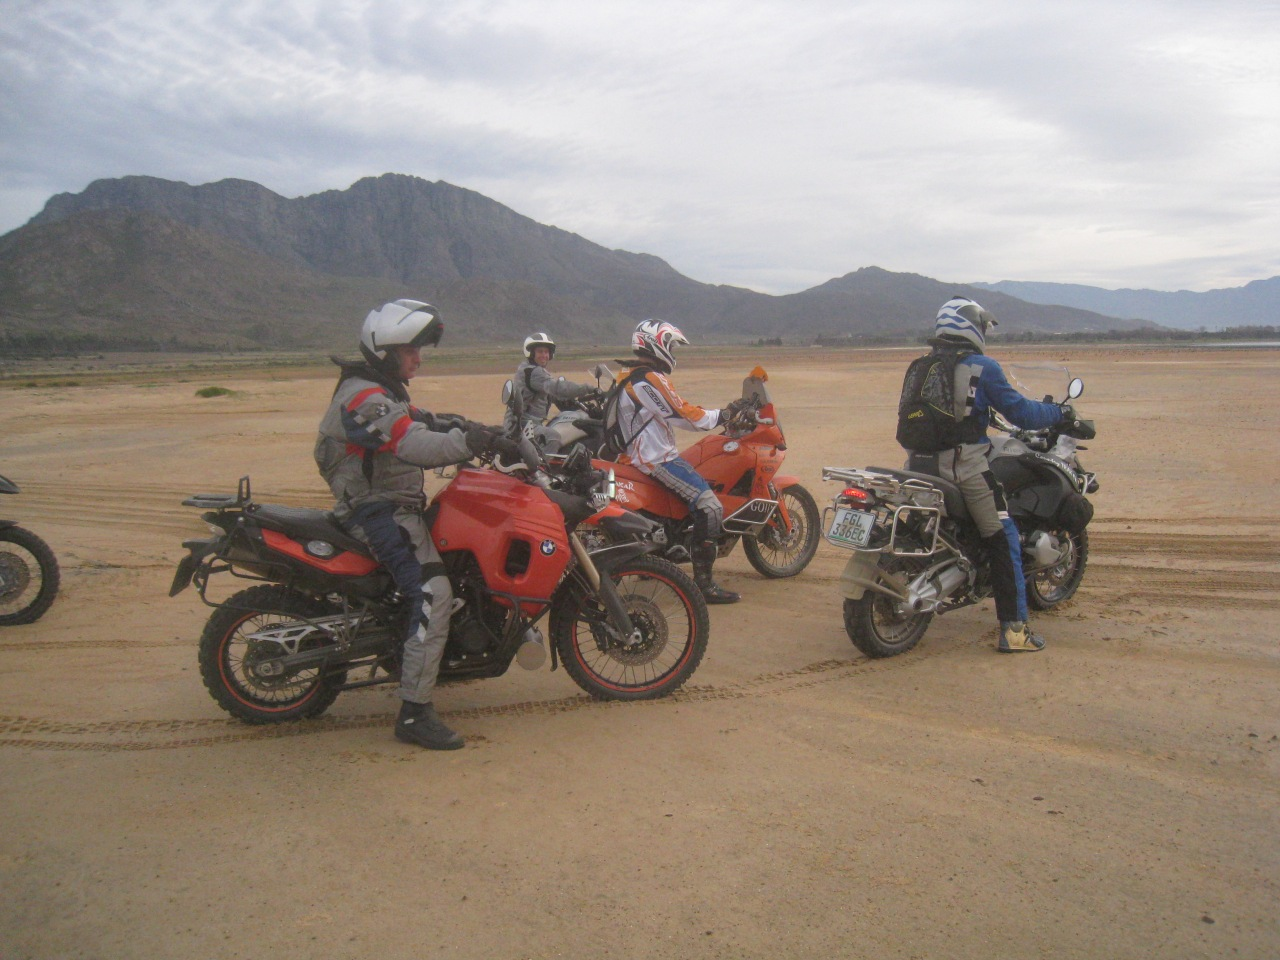 Course involved drifting, racing on sand, sliding,  riding slowly in deep sand , jumping, and climbing and descending dunes.